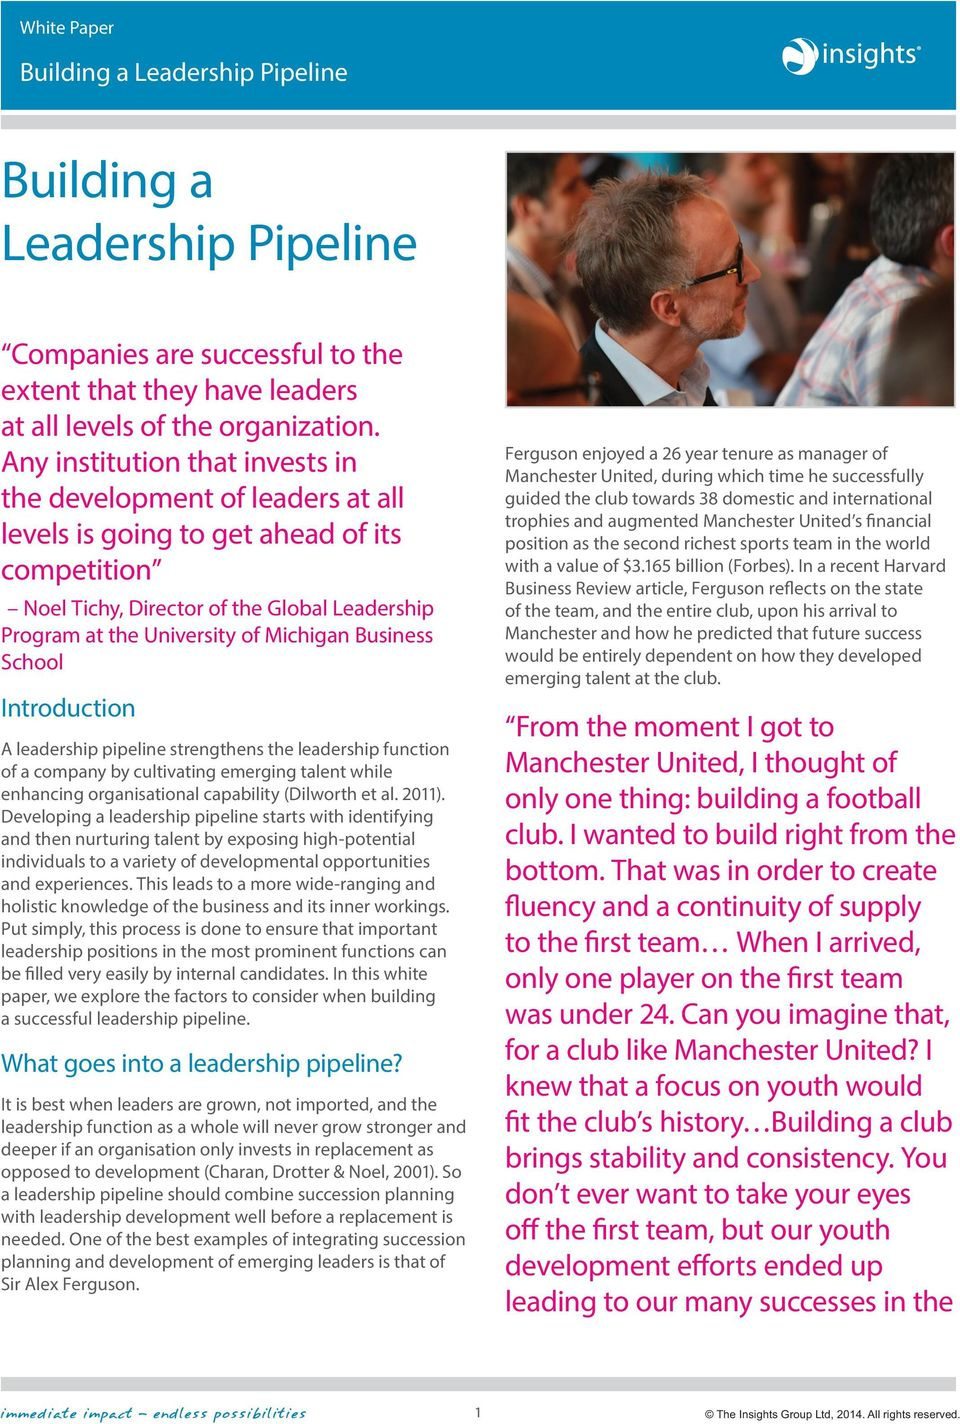 Business School Introduction A leadership pipeline strengthens the leadership function of a company by cultivating emerging talent while enhancing organisational capability (Dilworth et al. 2011).